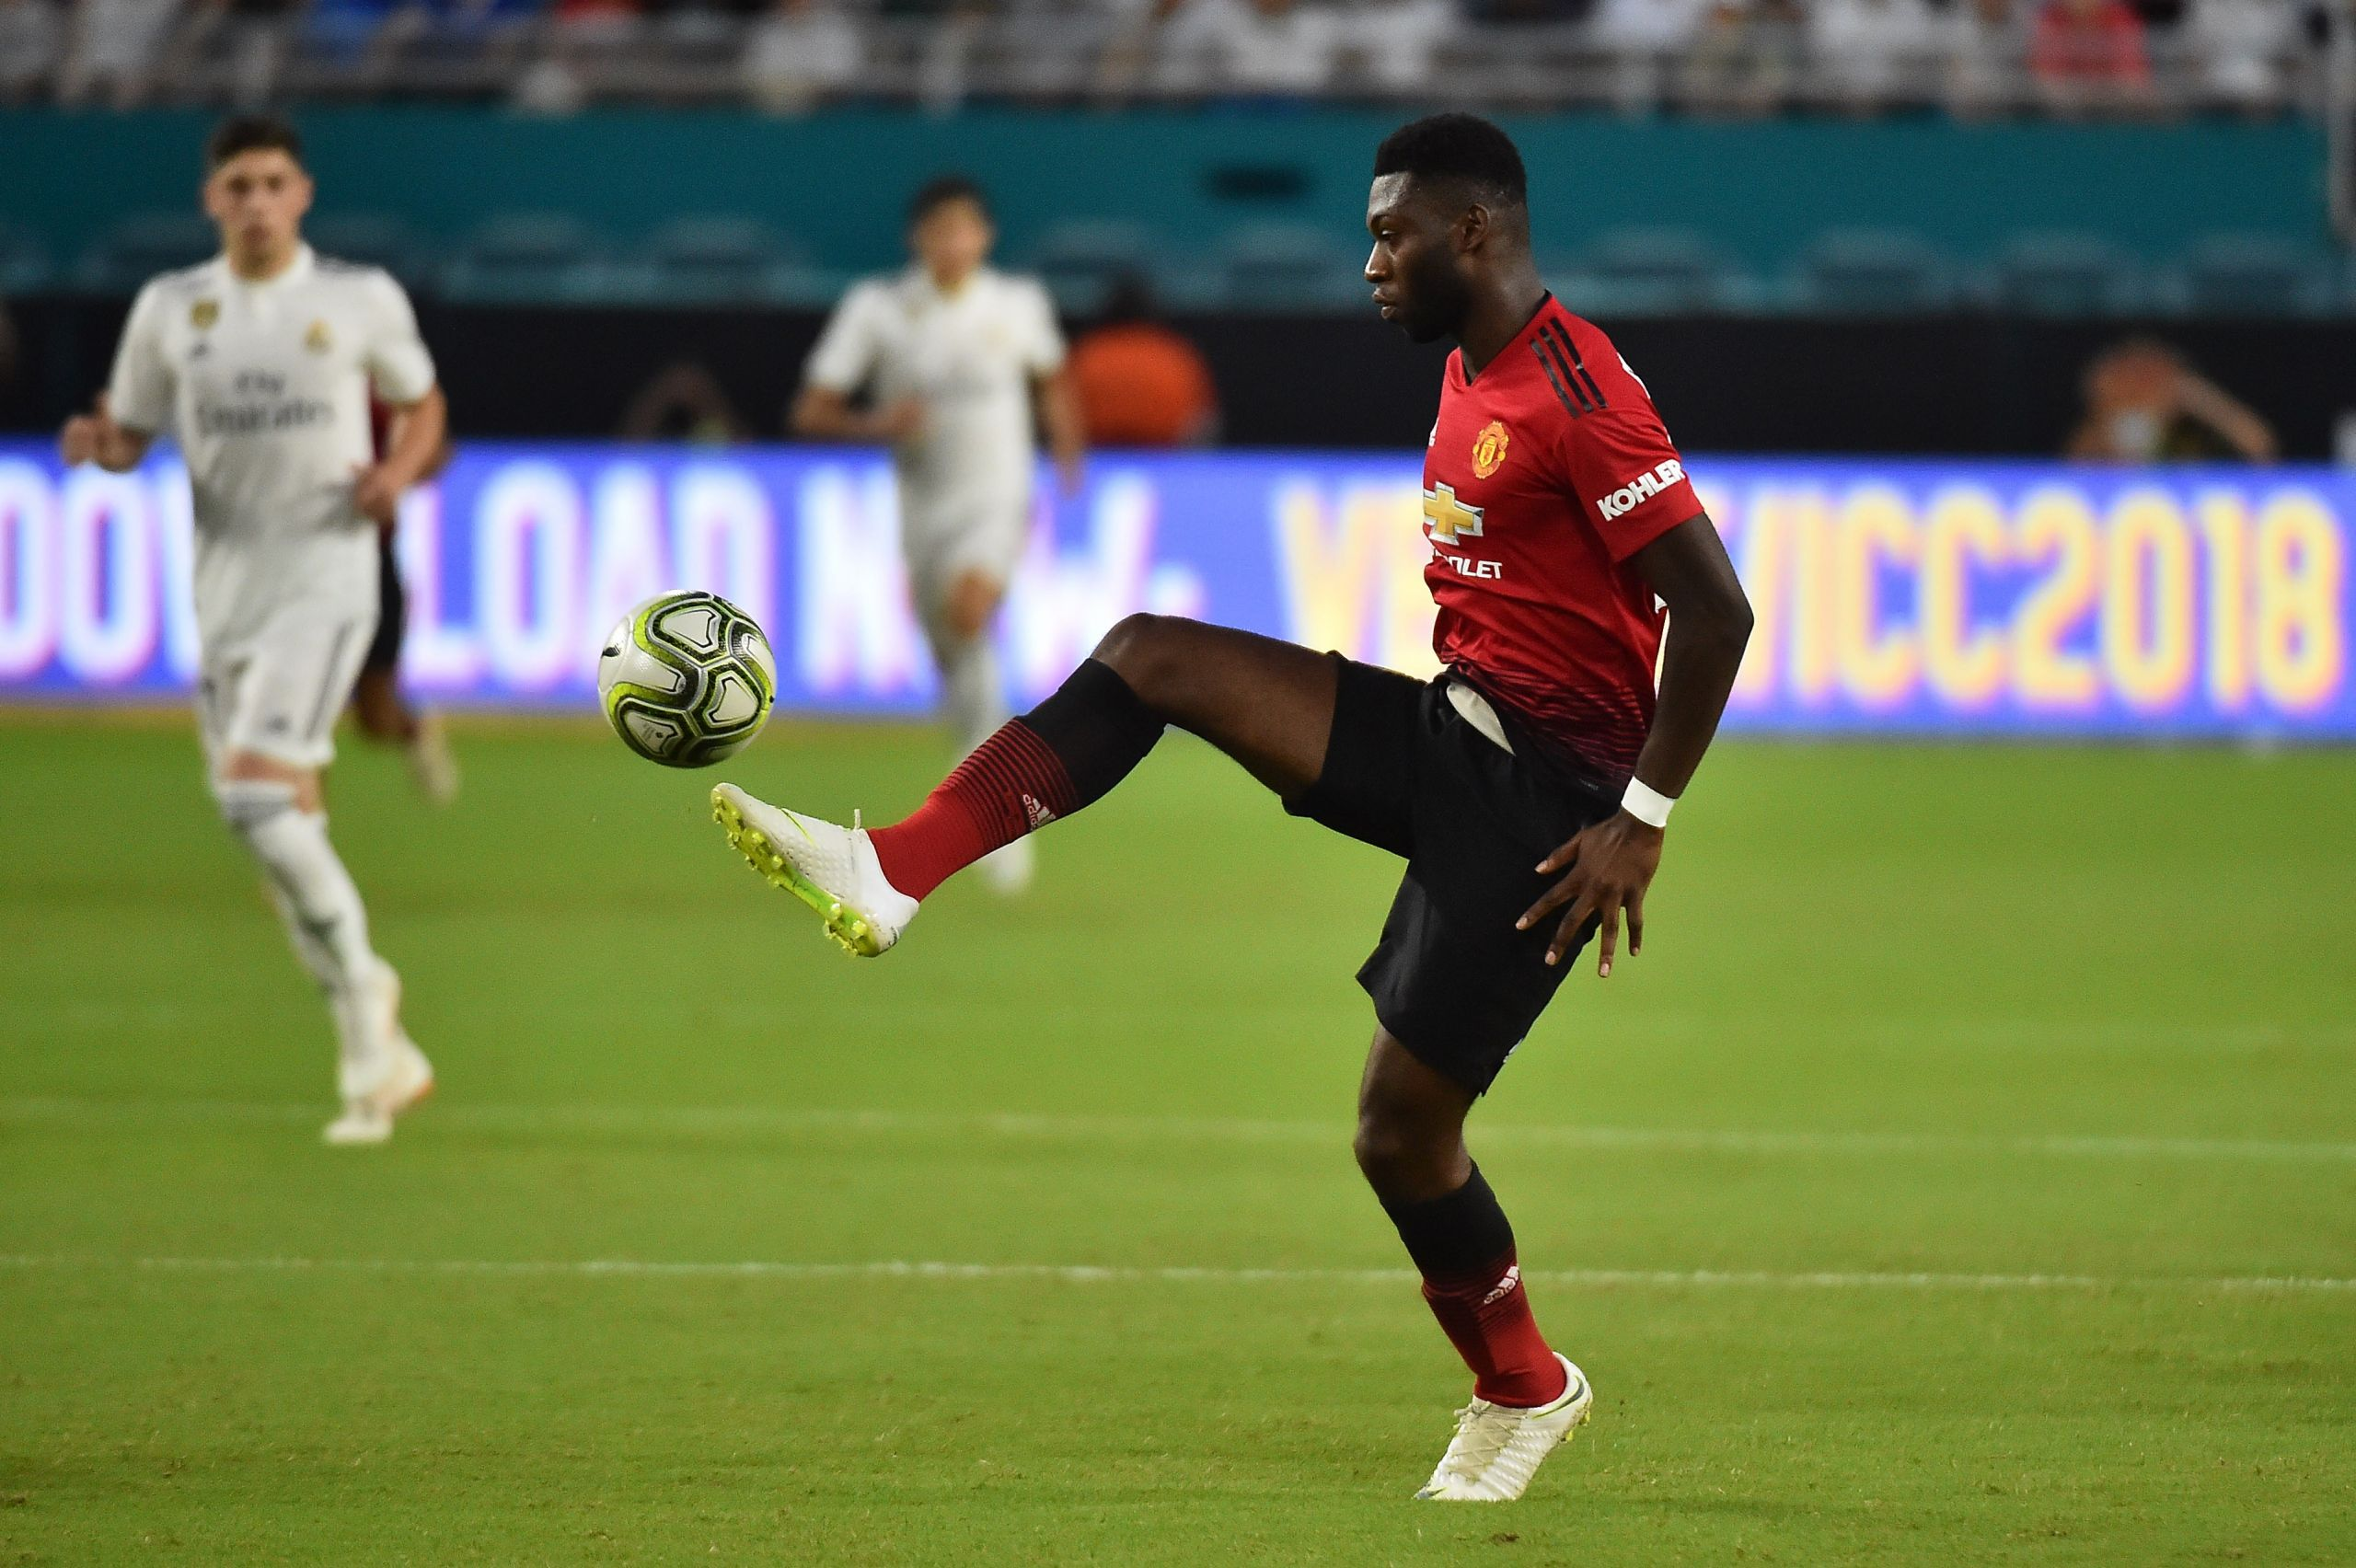 2018 08 01t z nocid rtrmadp 3 soccer international champions cup manchester united at real madrid JPG